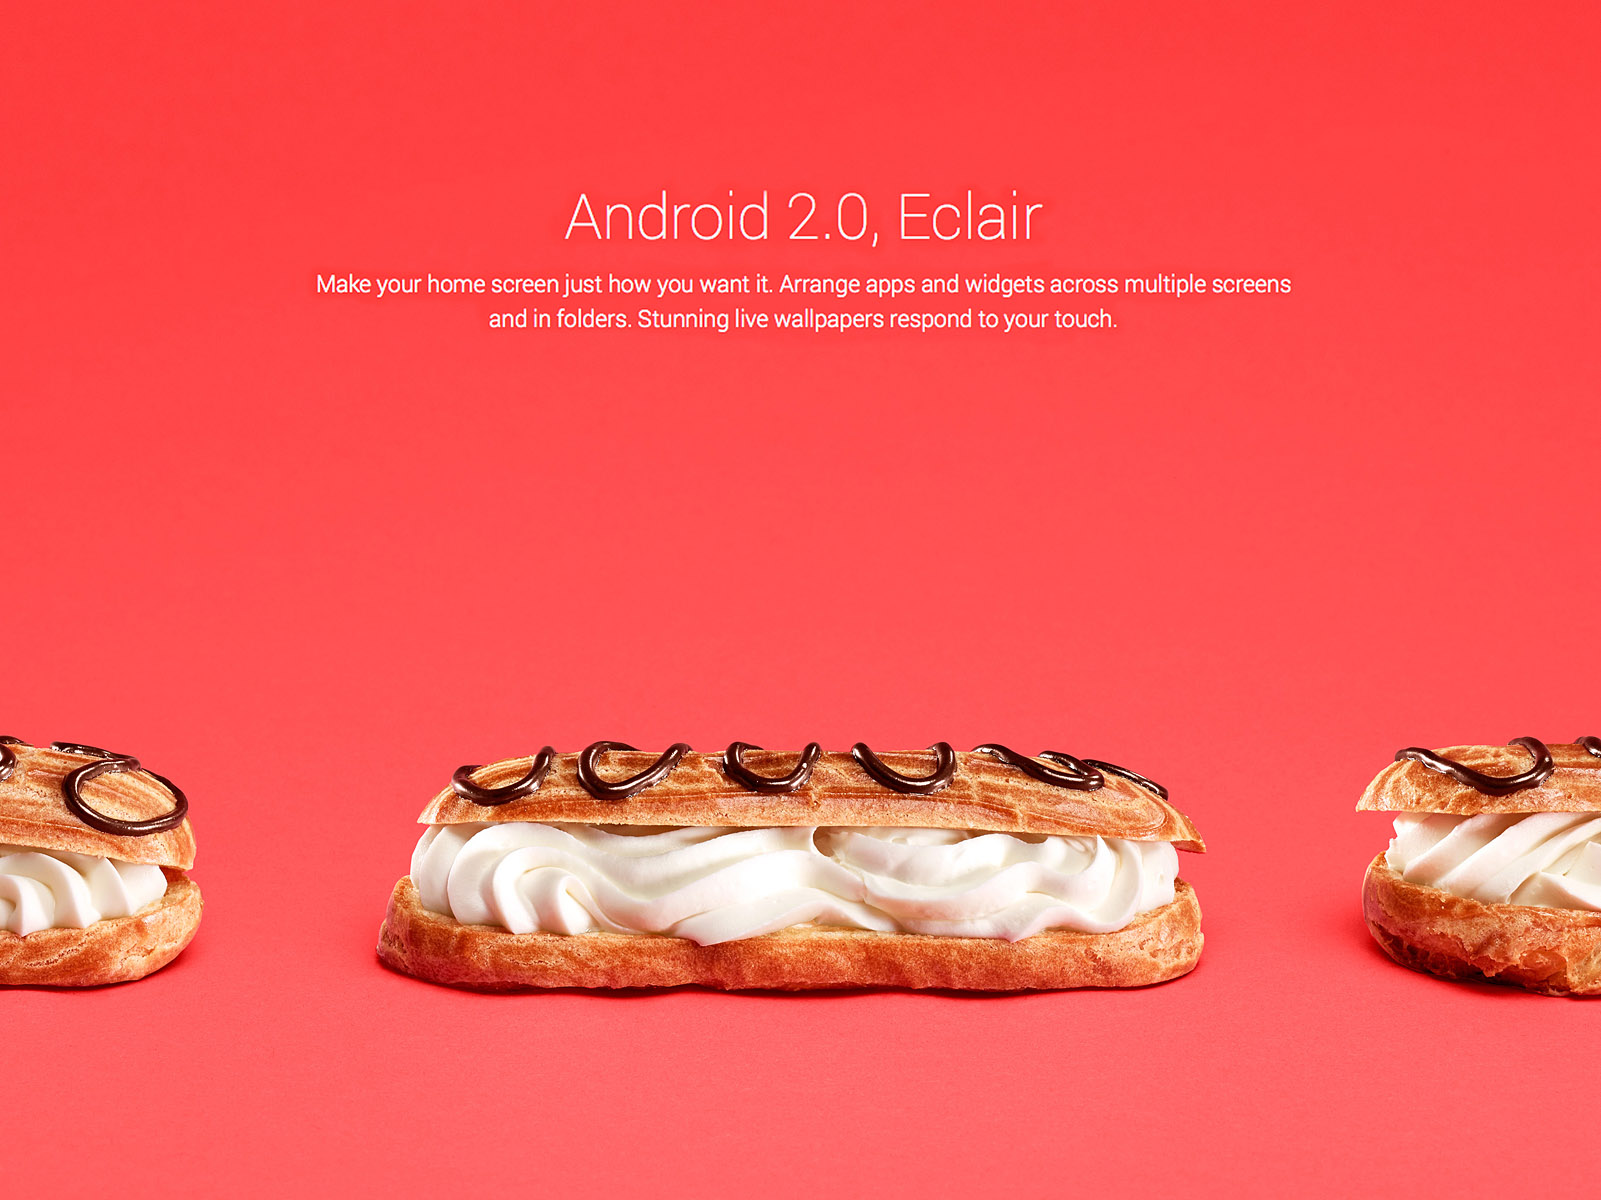 Caruso_Android_Eclair_300dpi